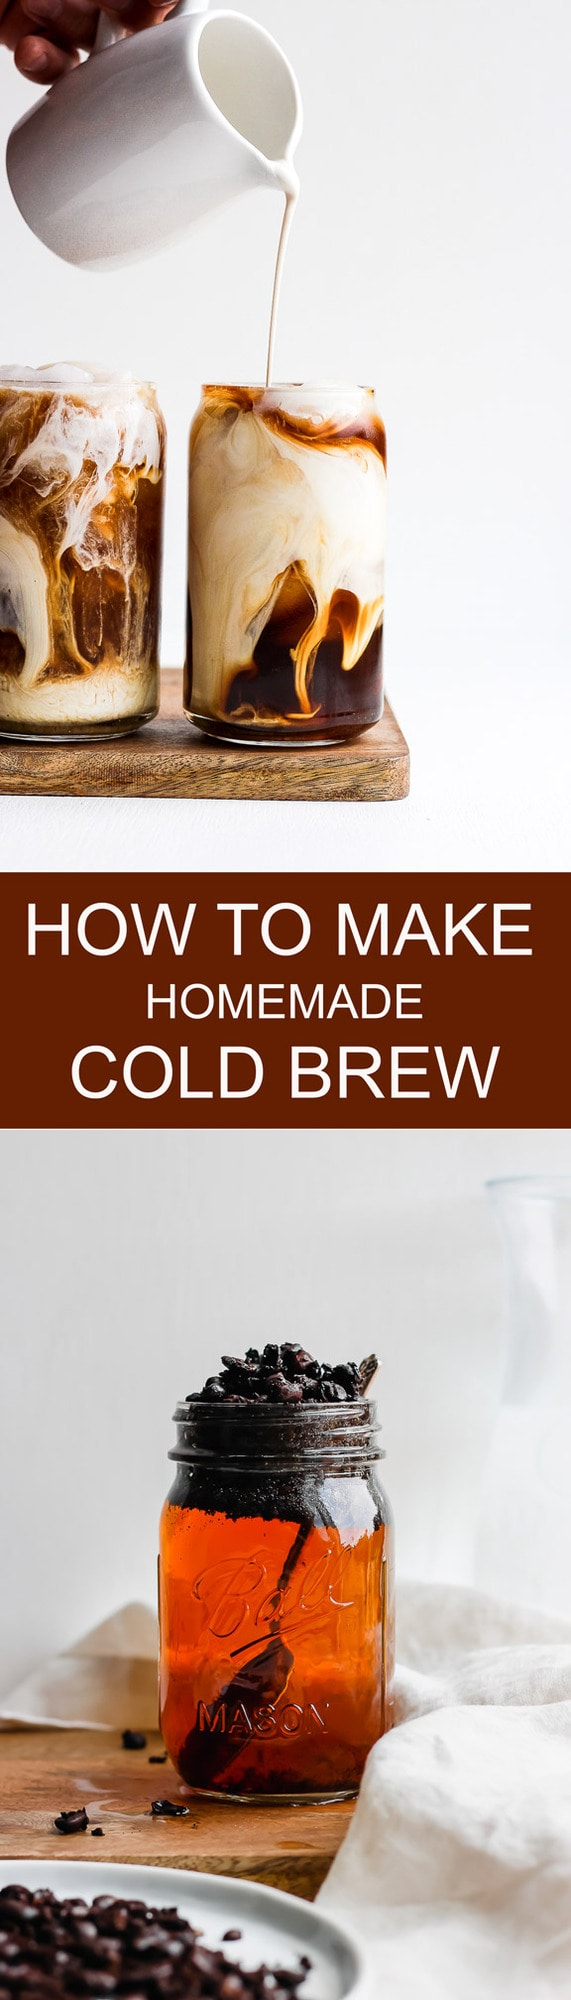 How to Make Homemade Coffee - step by step tutorial so you can make your own cold brew at home! #coldbrew #coffee #homemadecoldbrew